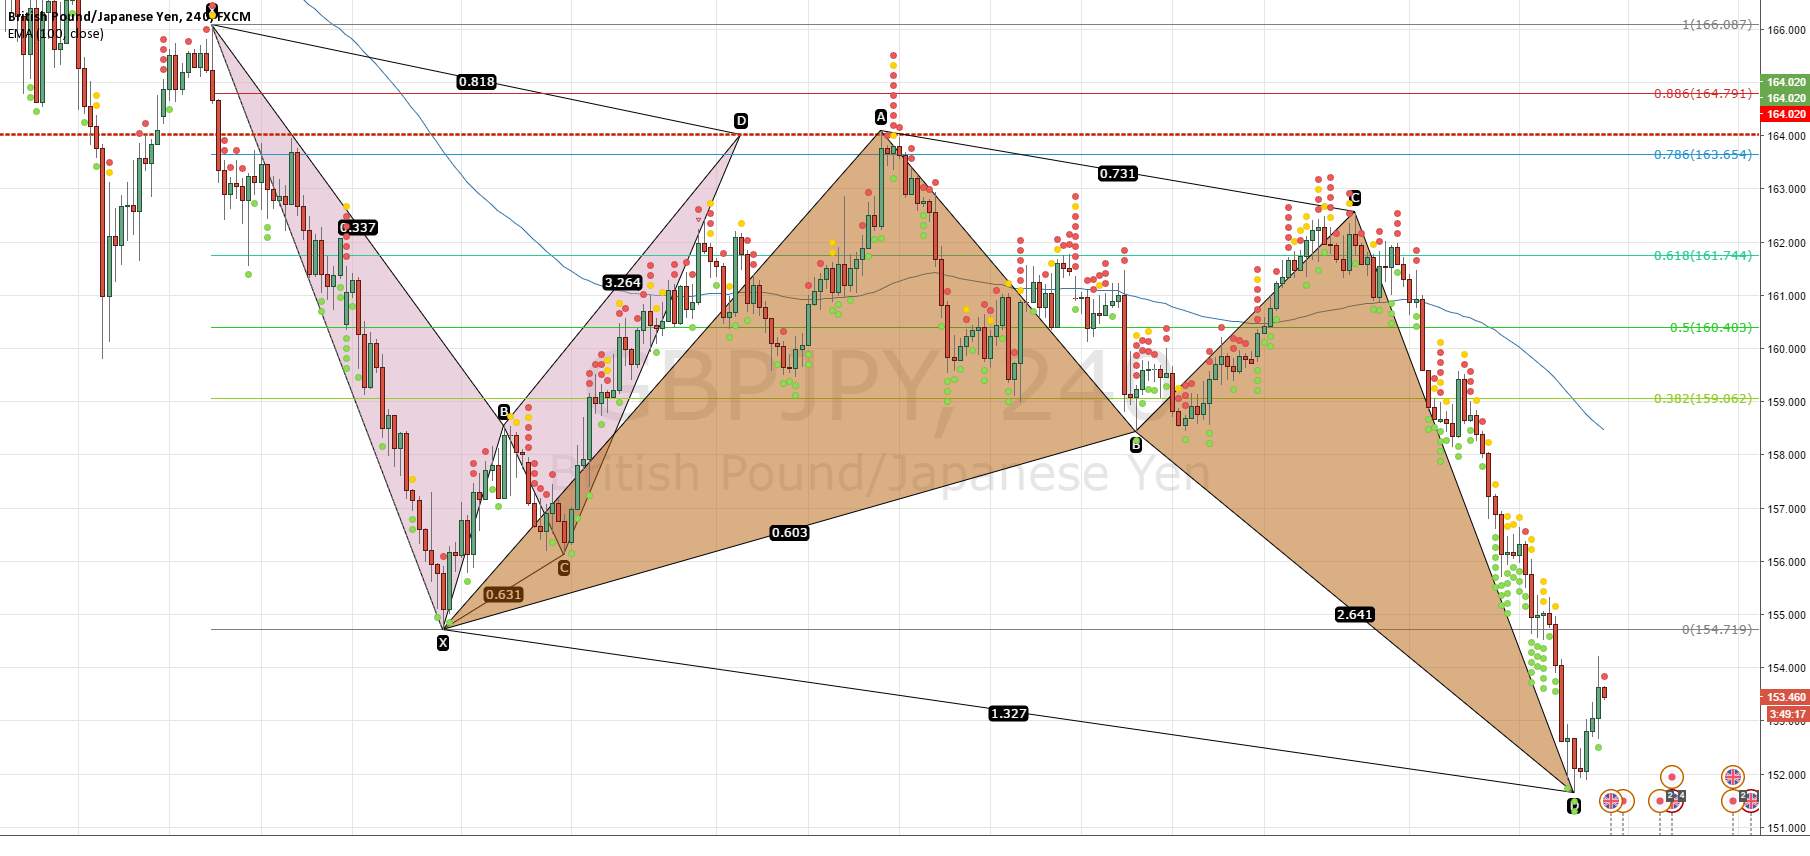 GBPJPY Bullish Butterfly